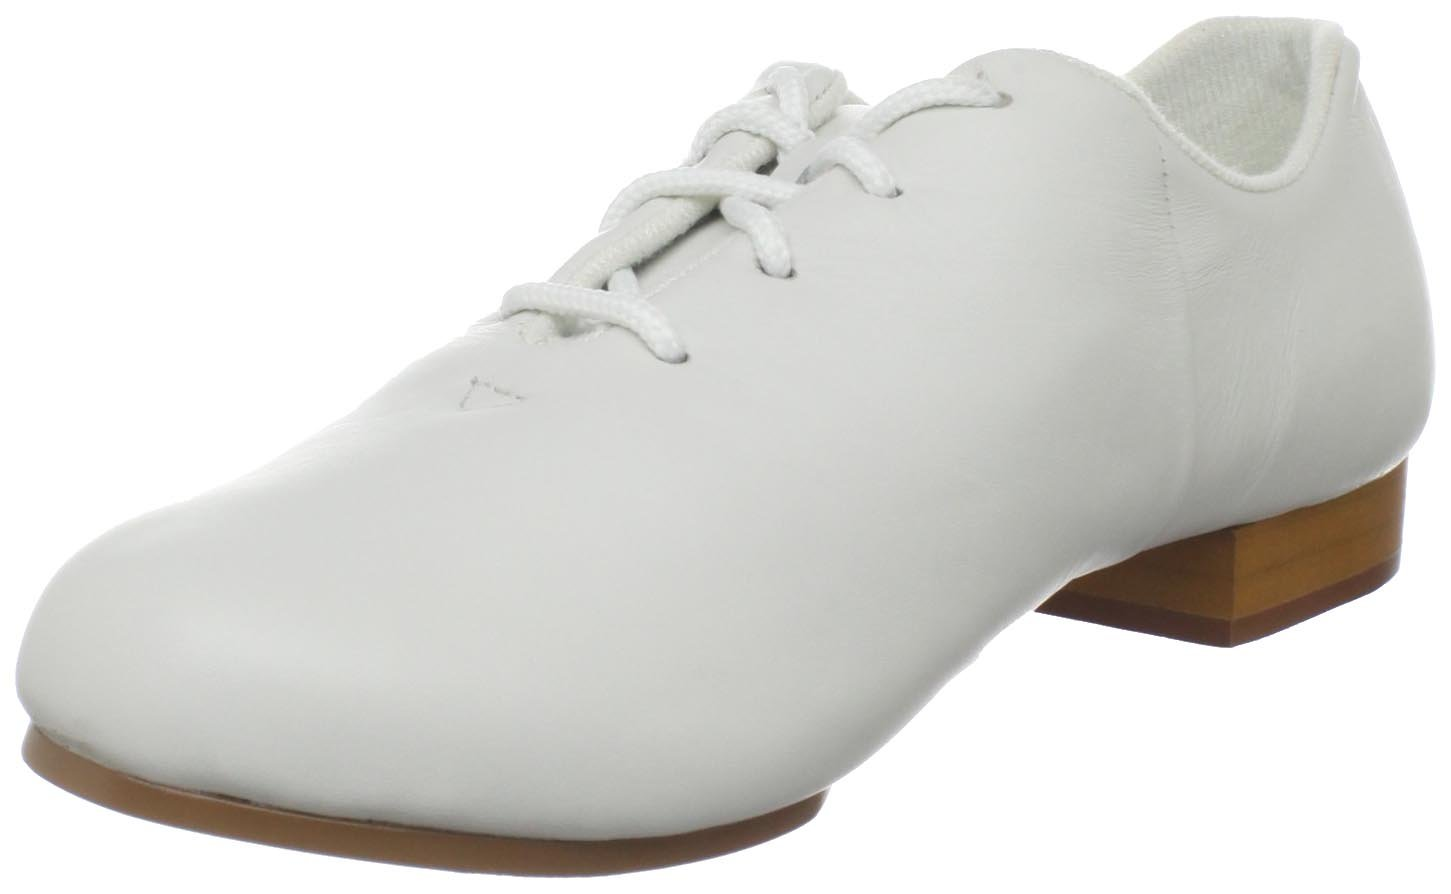 Dance Class Women's CS401 Split Sole Jazz/Clogging Oxford,White,7.5 M US by Dance Class